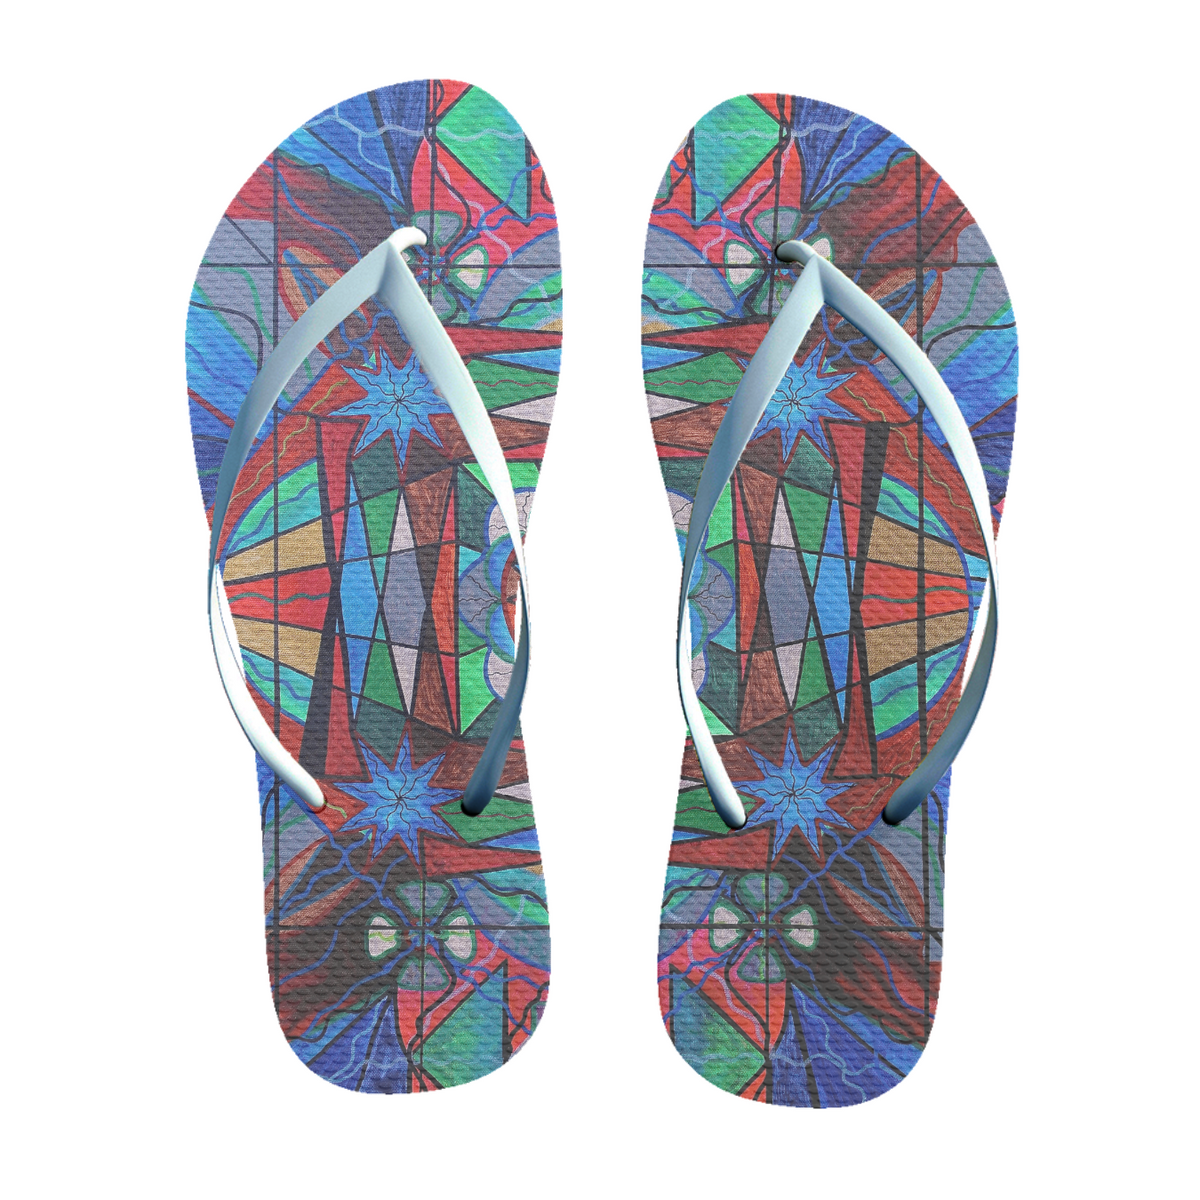 Sense of Security - Unisex Flip-Flops